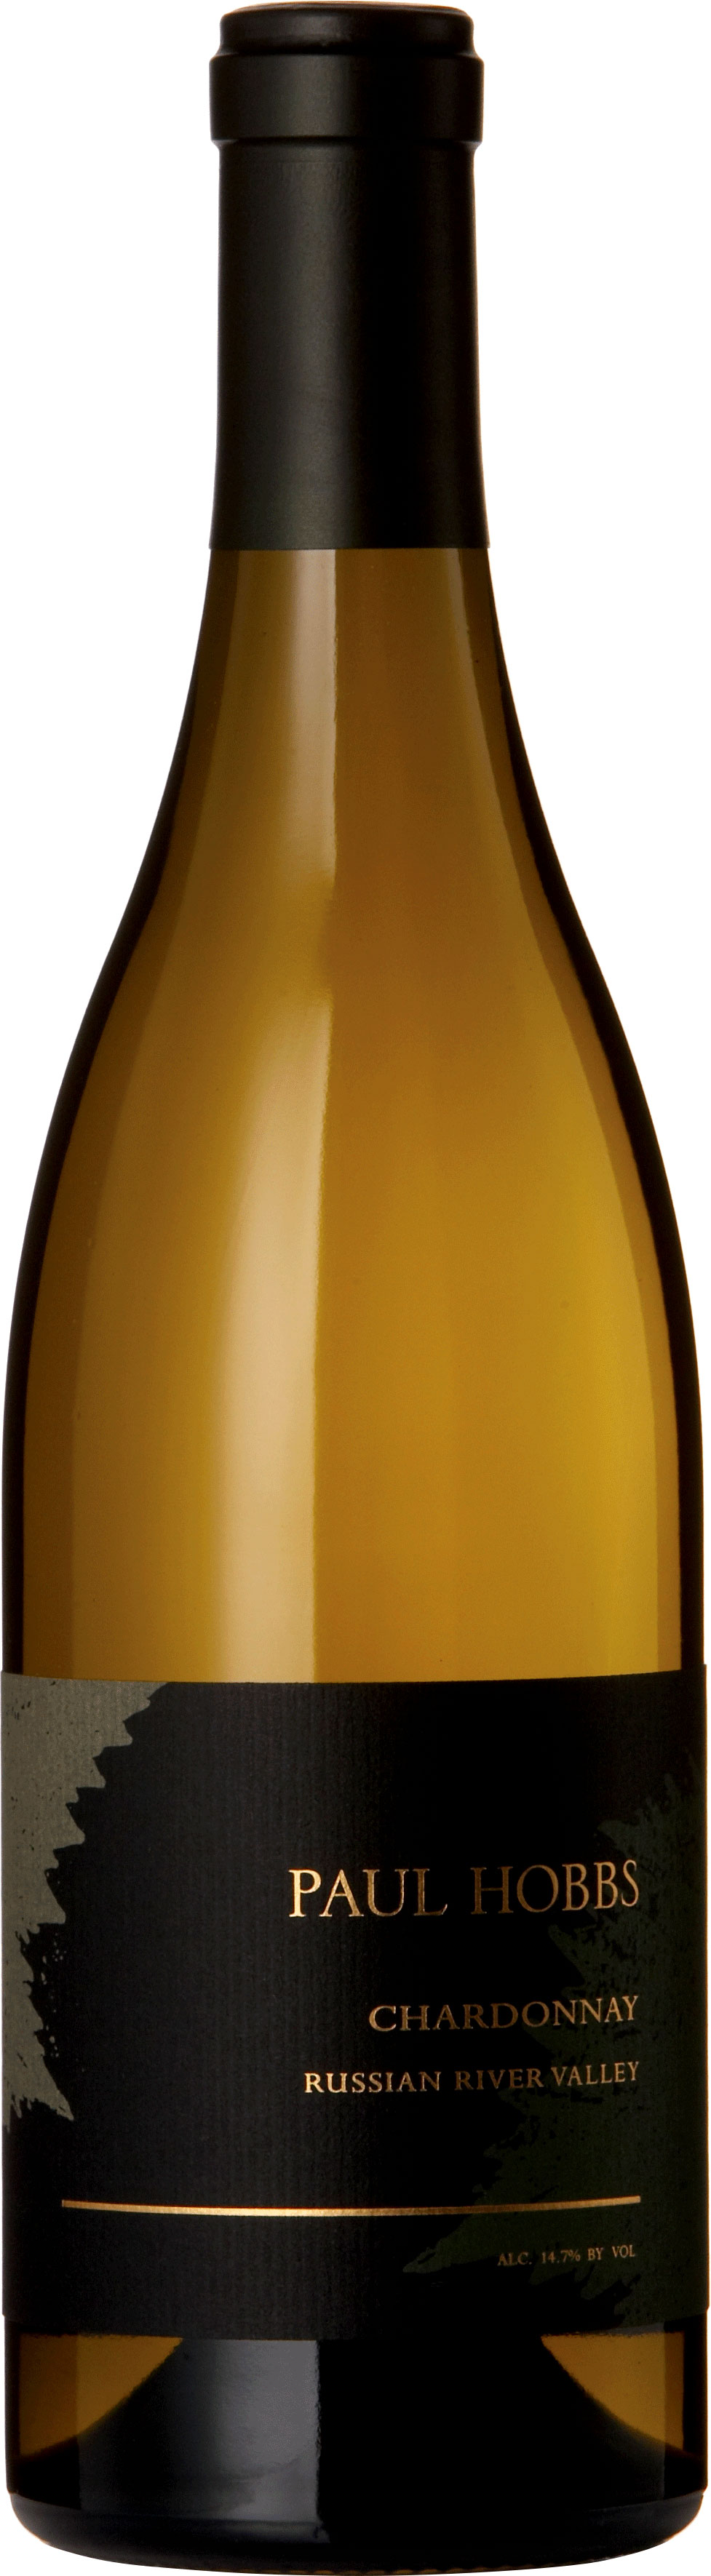 Paul Hobbs - Chardonnay Russian River 2016 12x 75cl Bottles